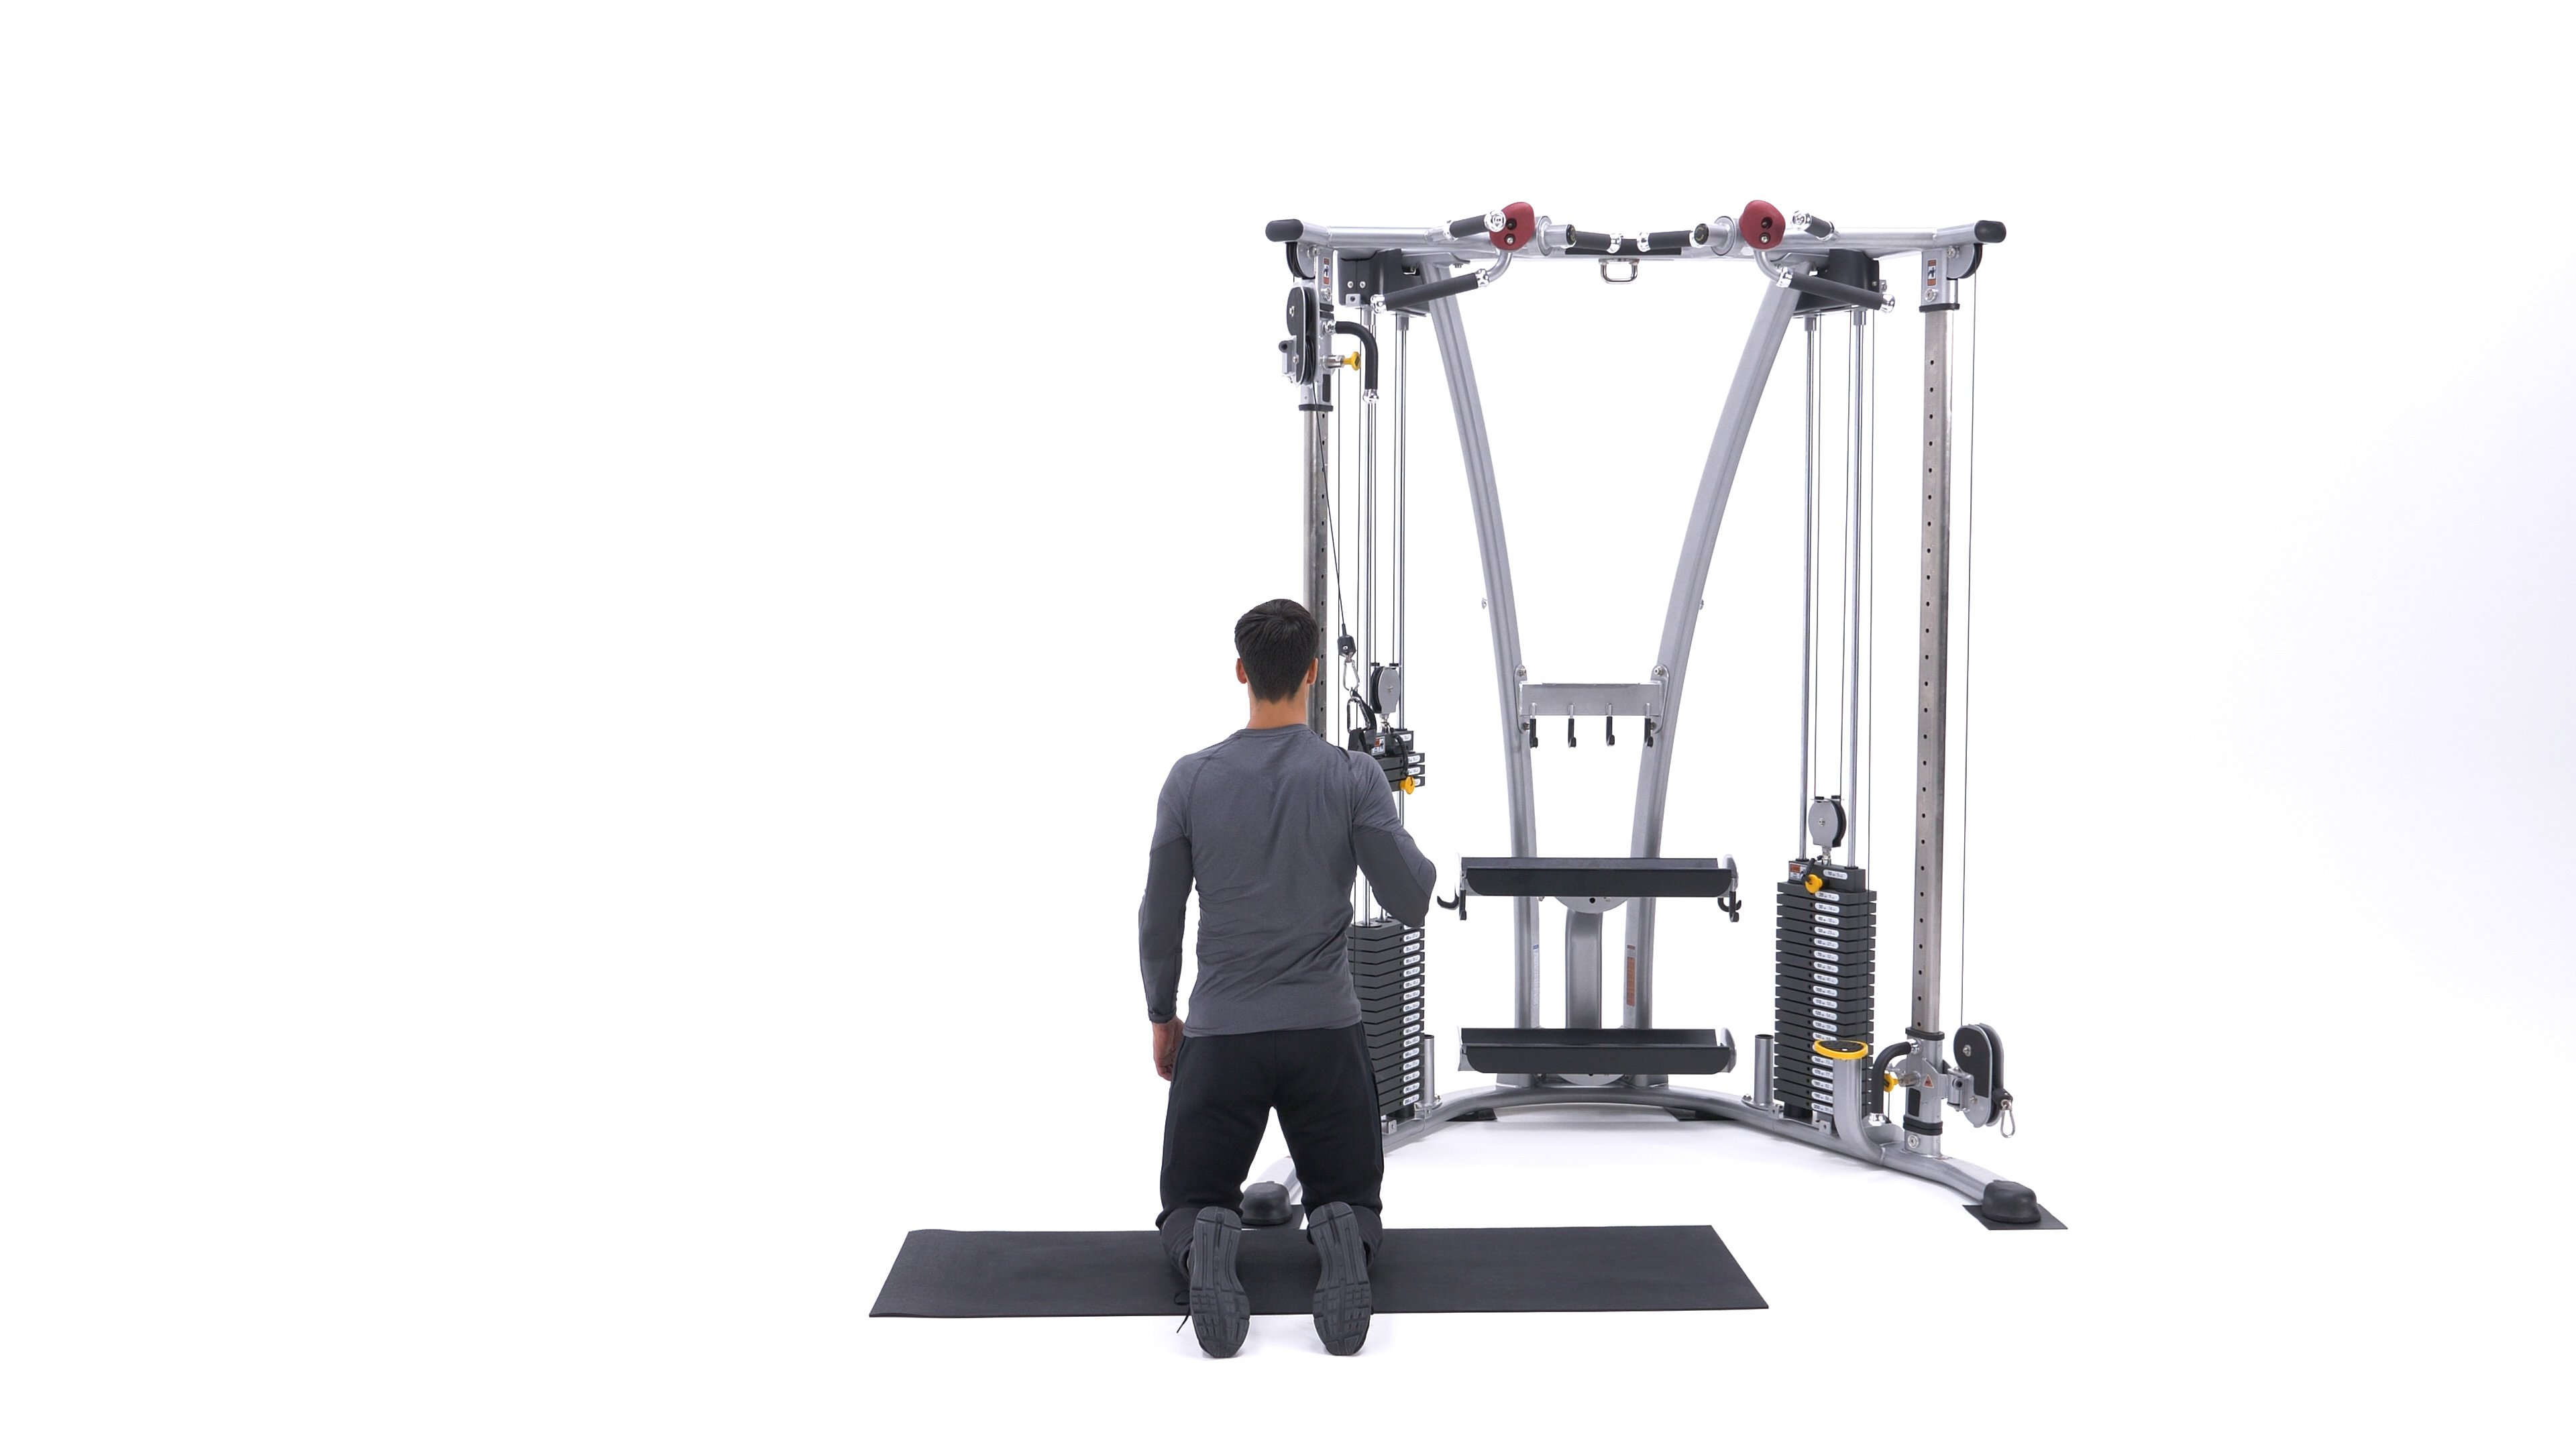 Single-arm kneeling lat pull-down image